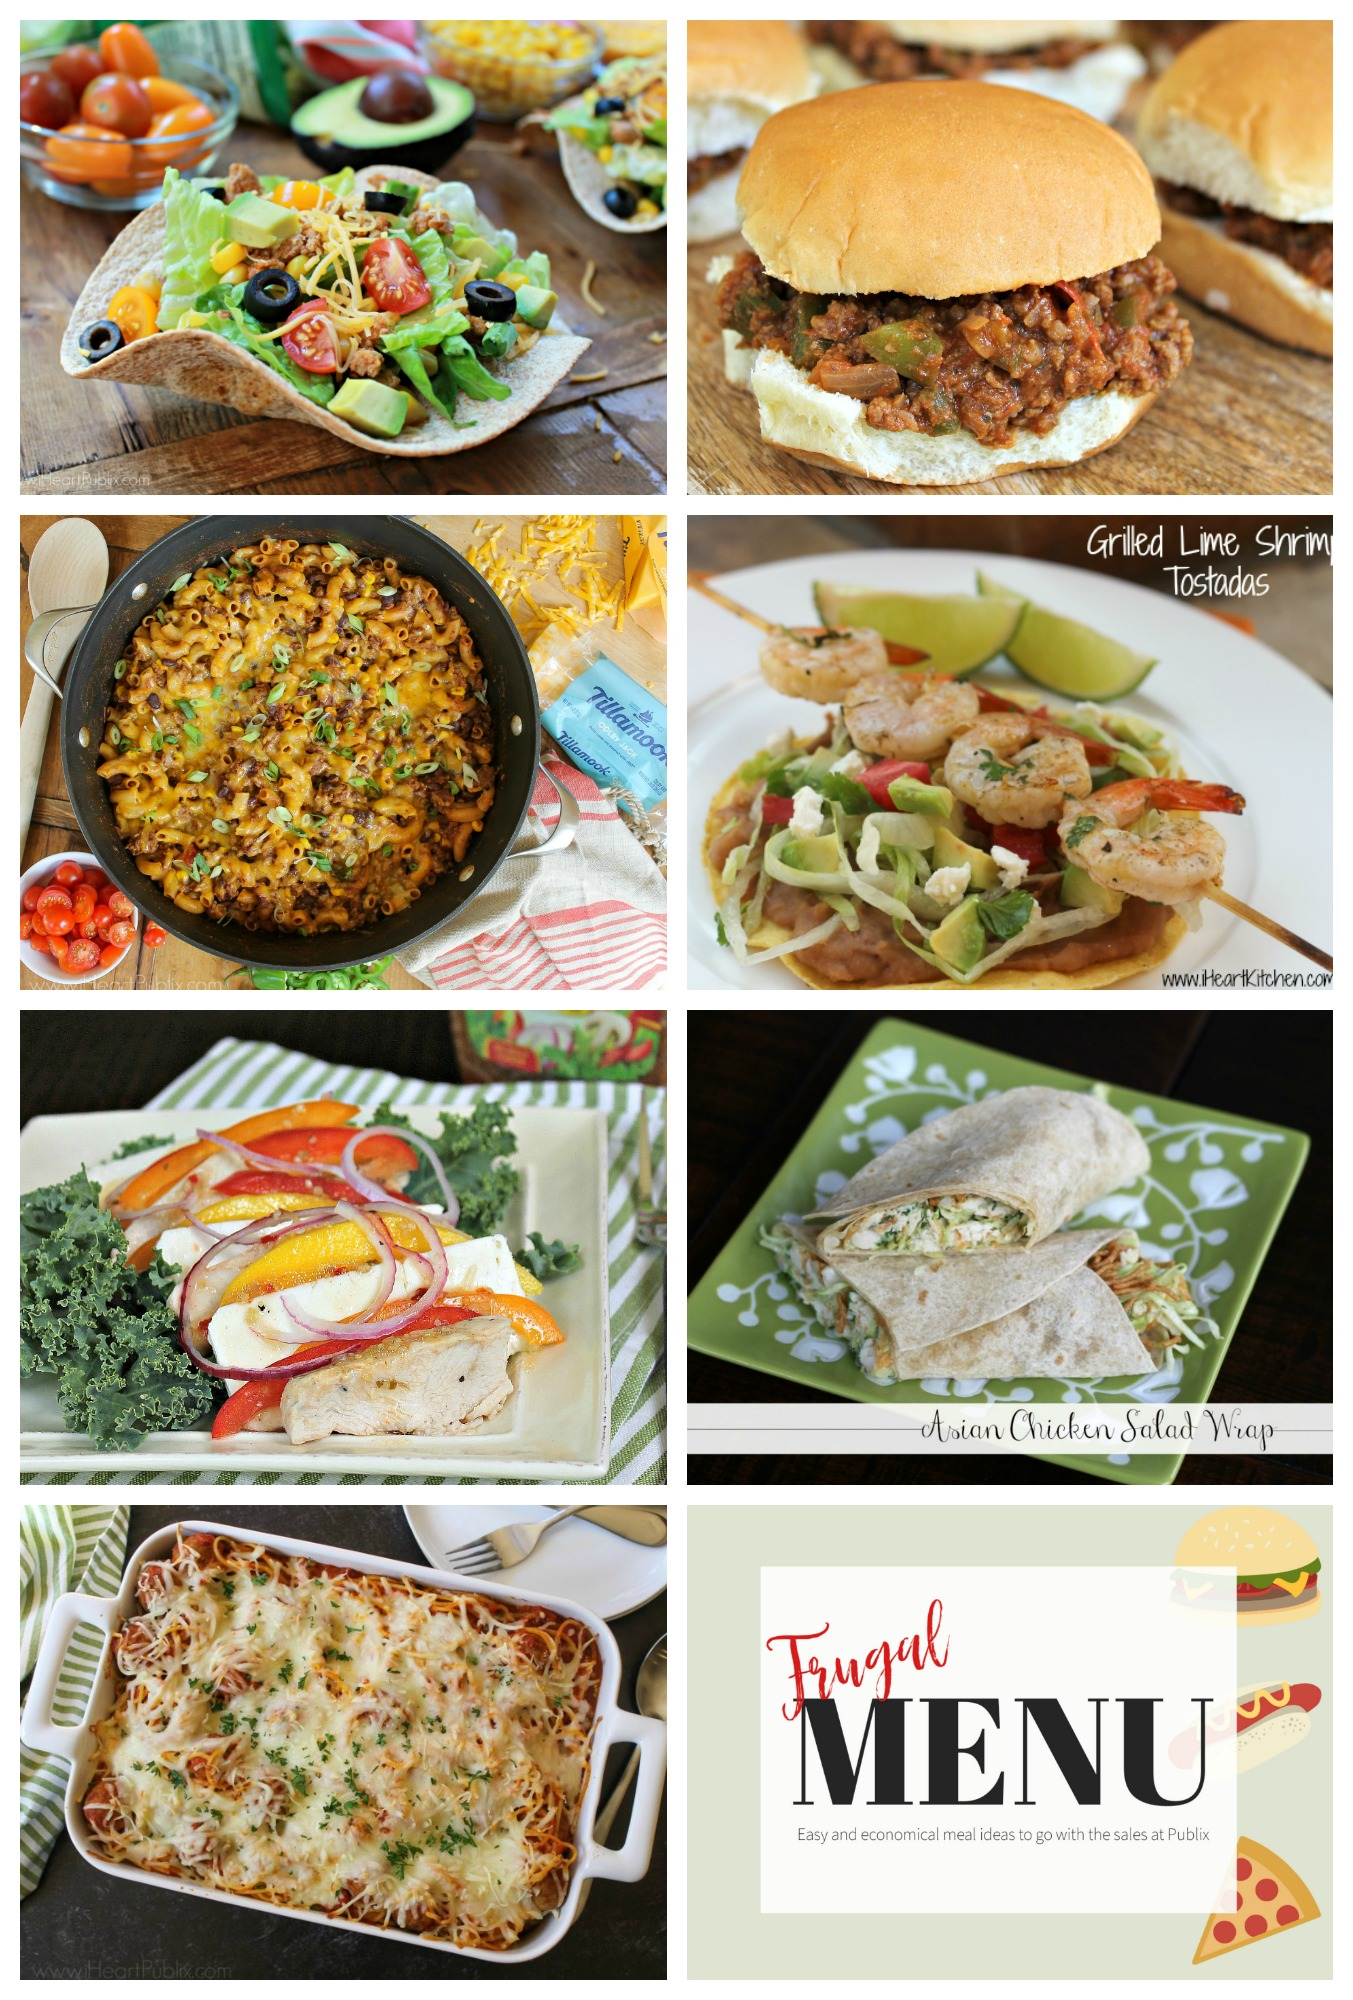 Frugal Family Menu For The Publix Sales Starting 6/18 – Seven Meals That Won't Break Your Budget on I Heart Publix 1